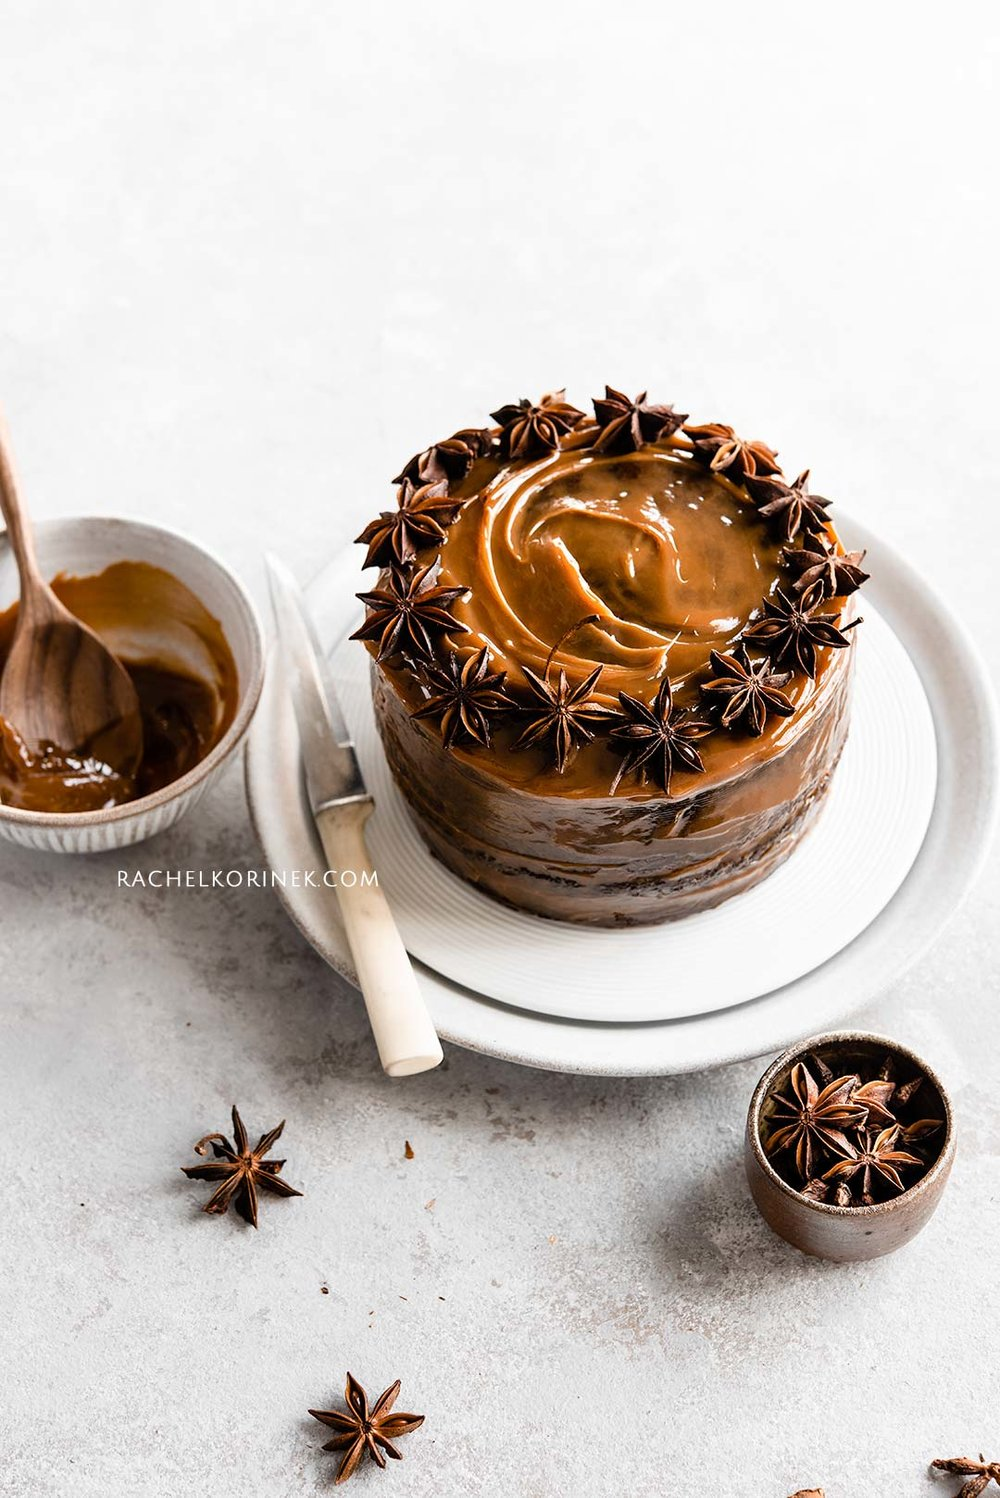 Rachel Korinek | Food Photographer Spiced Sticky Date Cake  Click to check out my latest food photography projects.  #twolovesstudio #beautifulcuisine #foodbloggerpro #foodphotography #learnfoodphotography #foodblogger #learnphotography #foodstyling #lightingtips #naturallight #foodphotographer